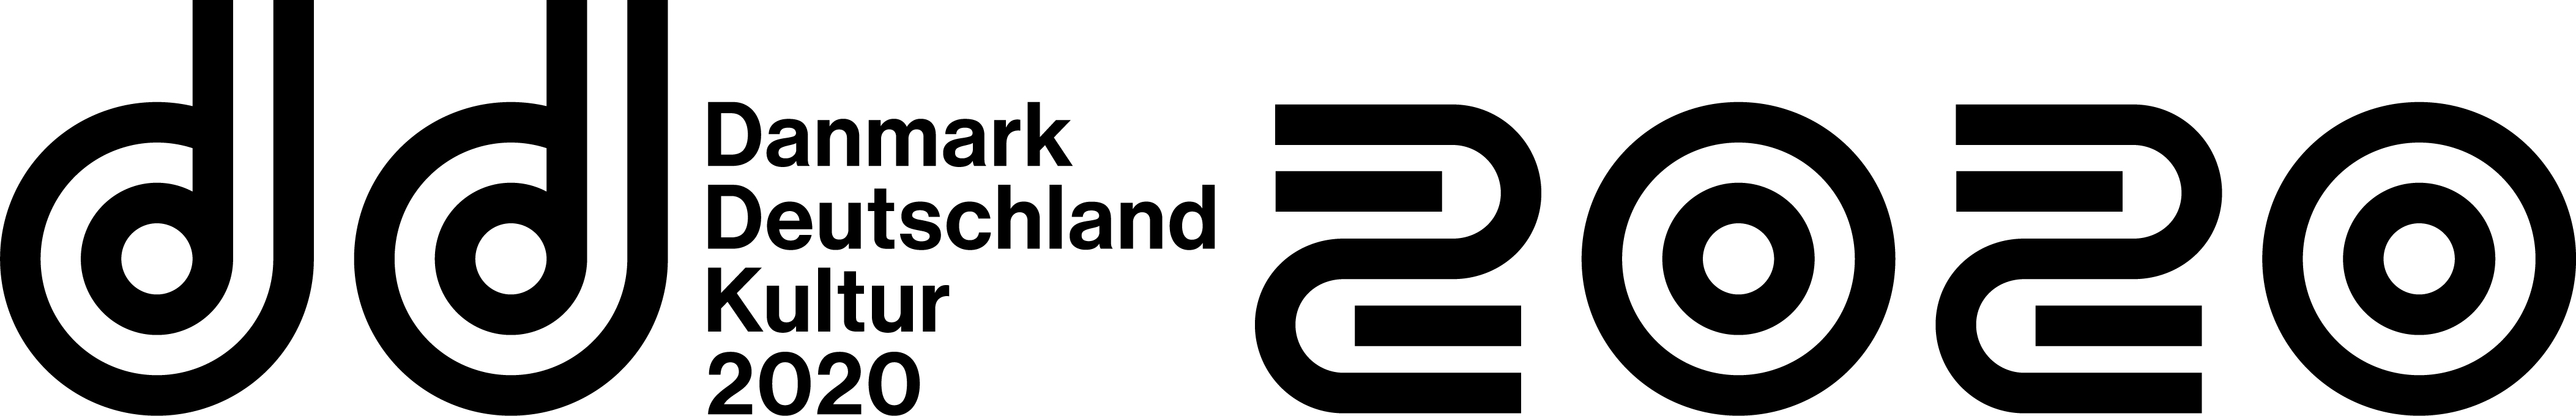 DD2020 Logo Naming Horizontal Black RGB